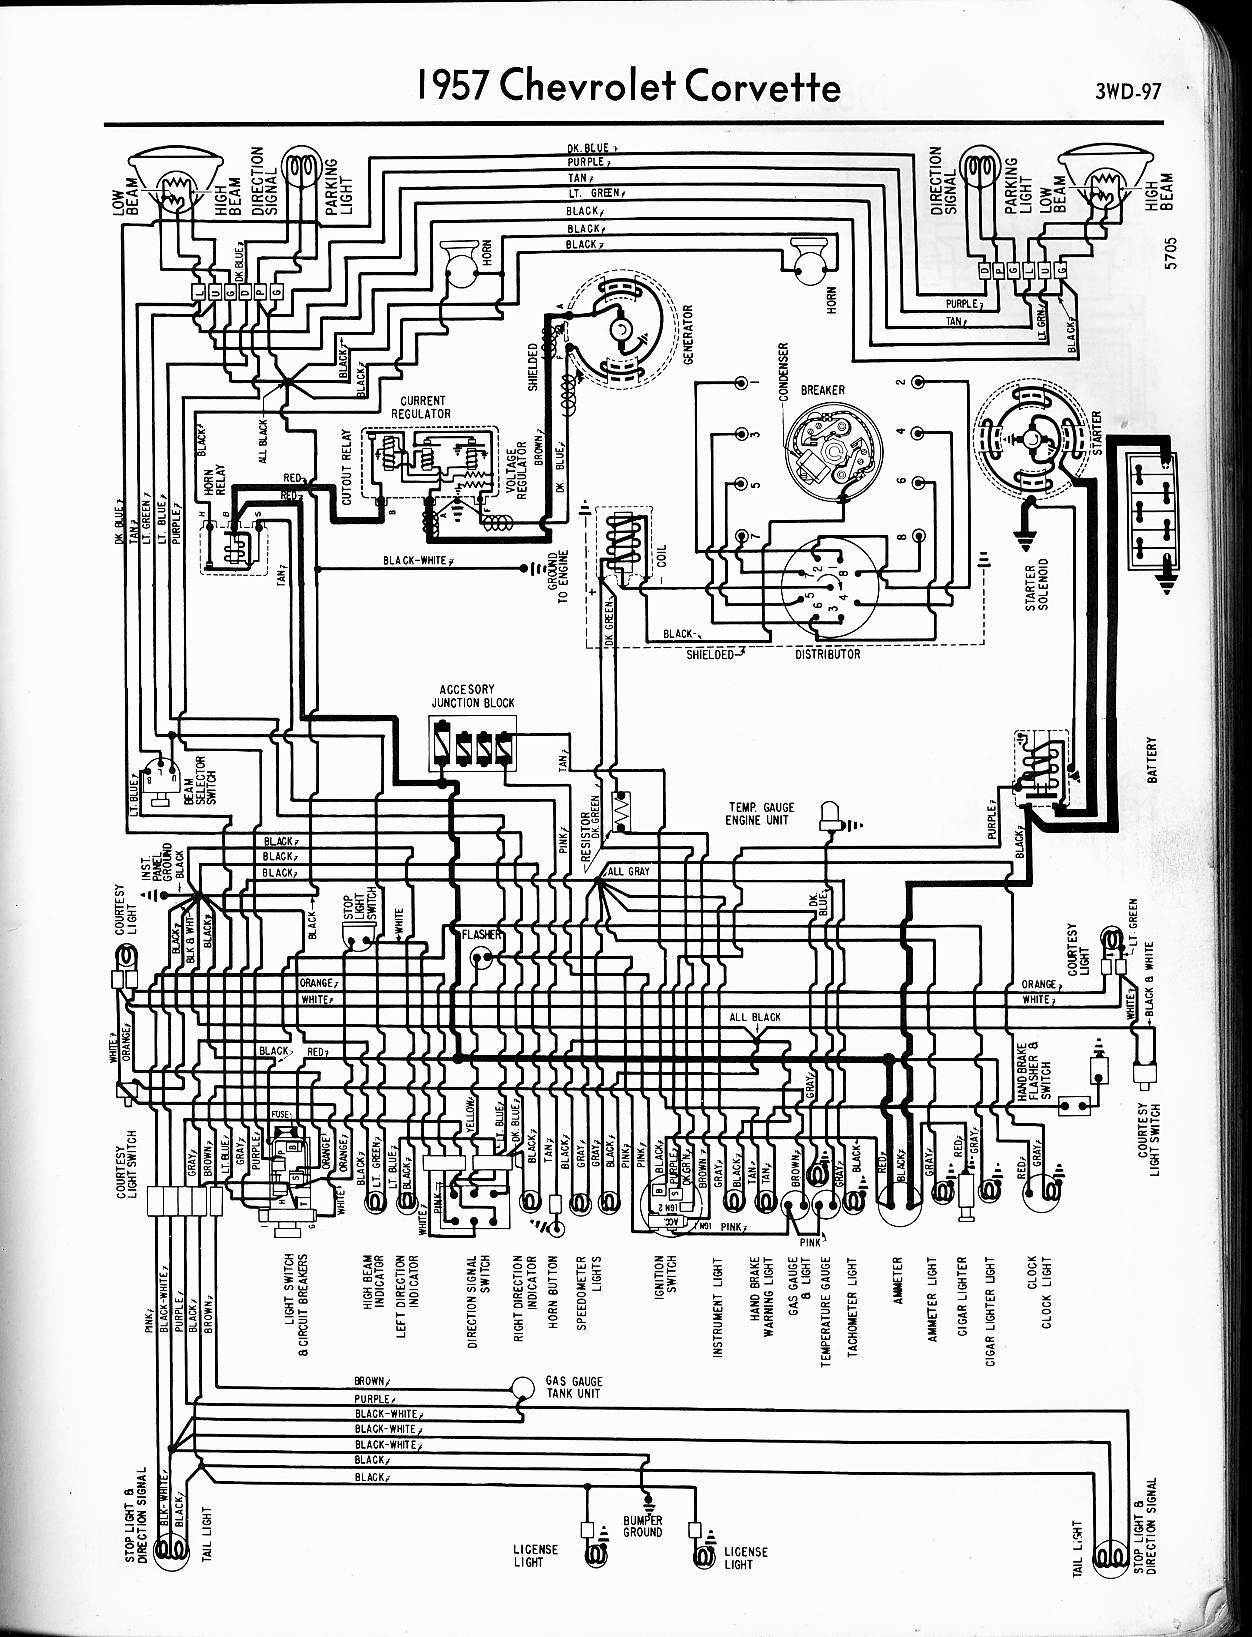 MWireChev57_3WD 097 57 65 chevy wiring diagrams chevrolet wiring harness at gsmportal.co